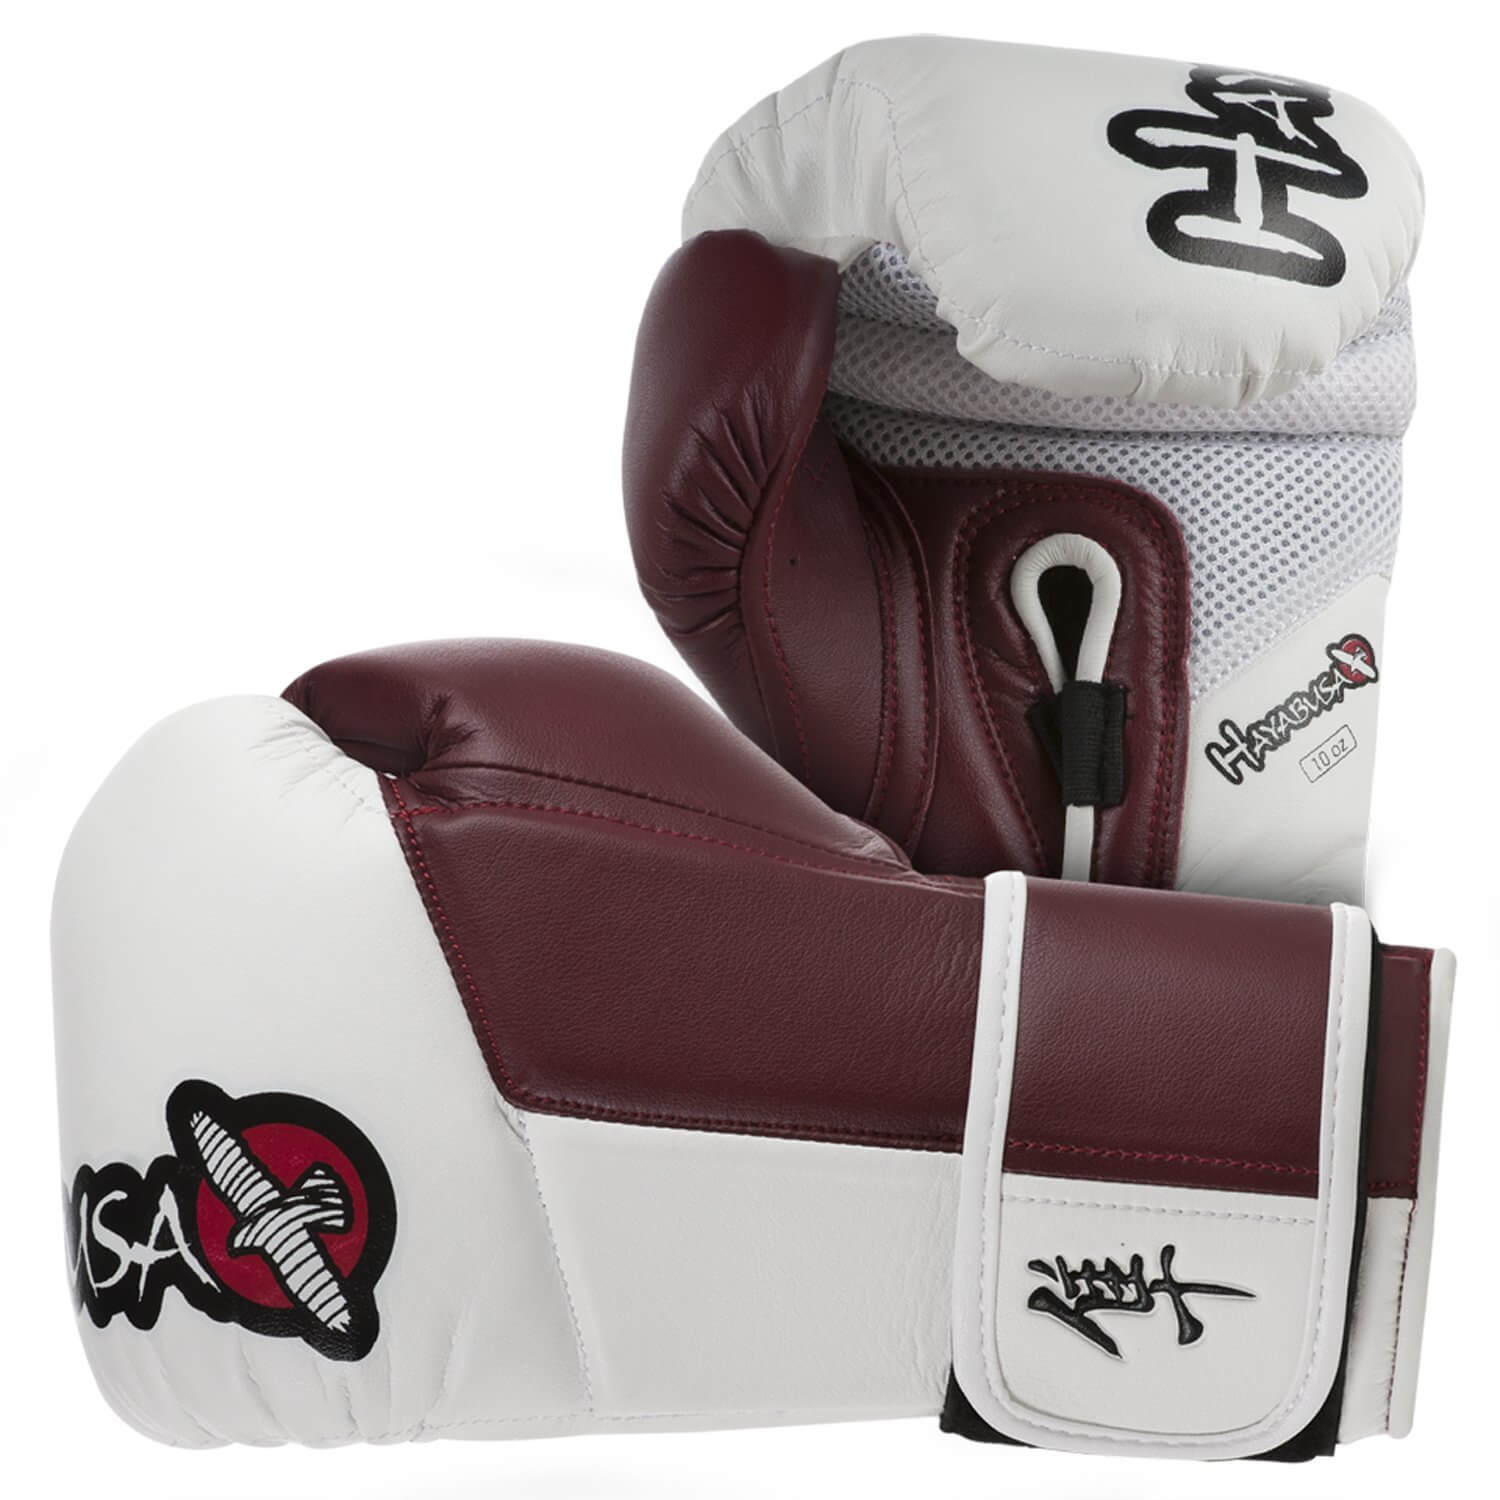 Heavy Bag Boxing Gloves Reviews 2019 With Ultimate Comparison